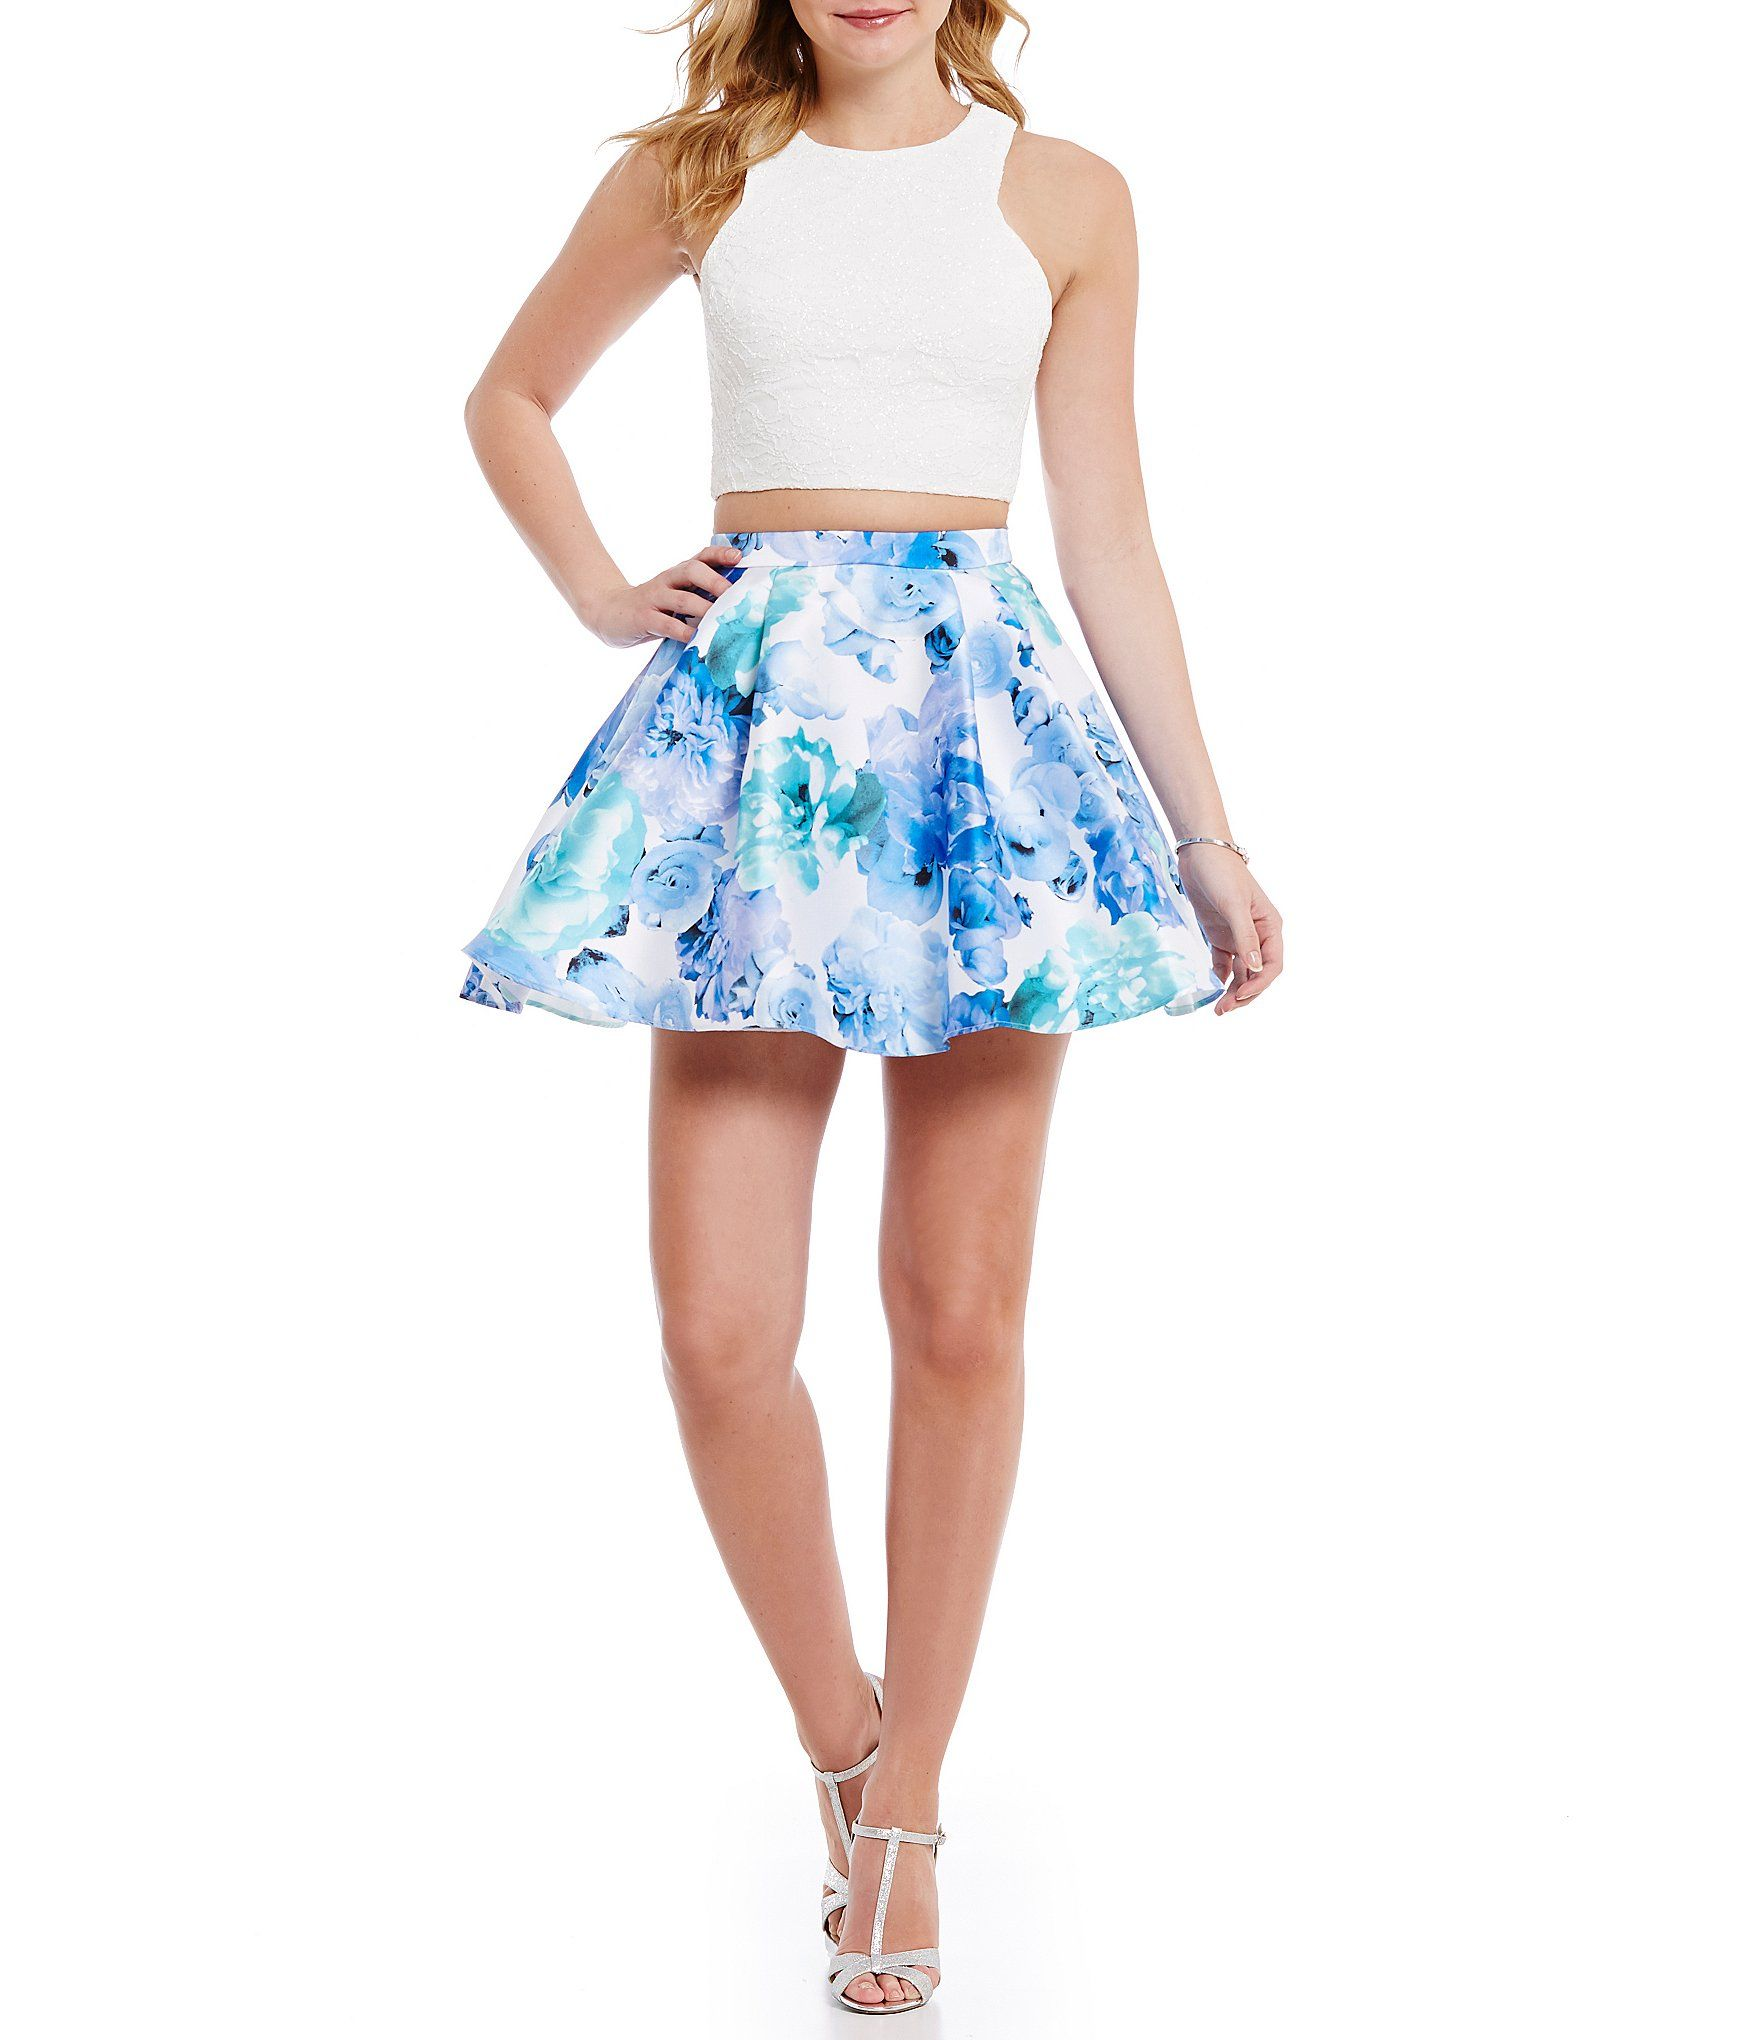 Shop for b darlin high neck glitter lace top to floral skirt two